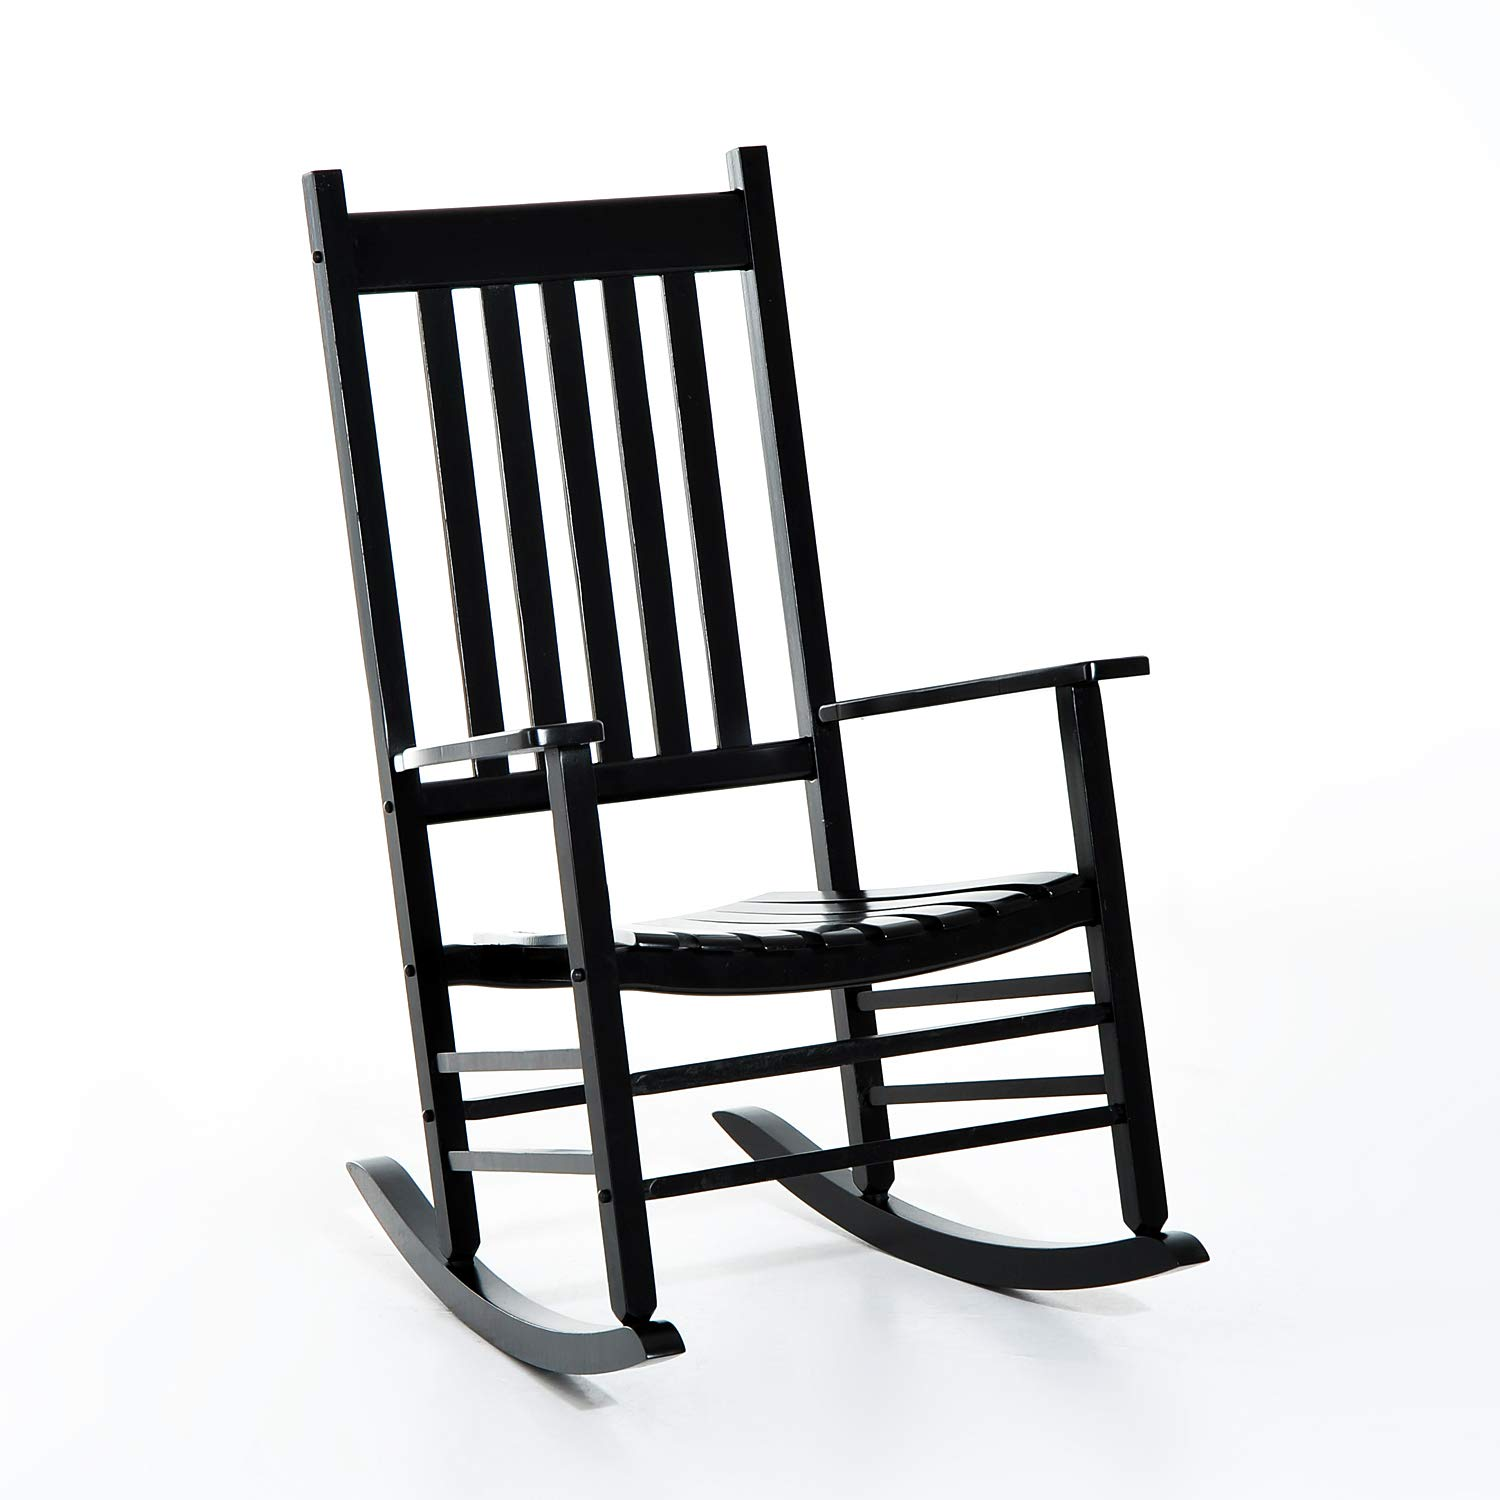 Outsunny Porch Rocking Chair - Outdoor Patio Wooden Rocker - Black by Outsunny